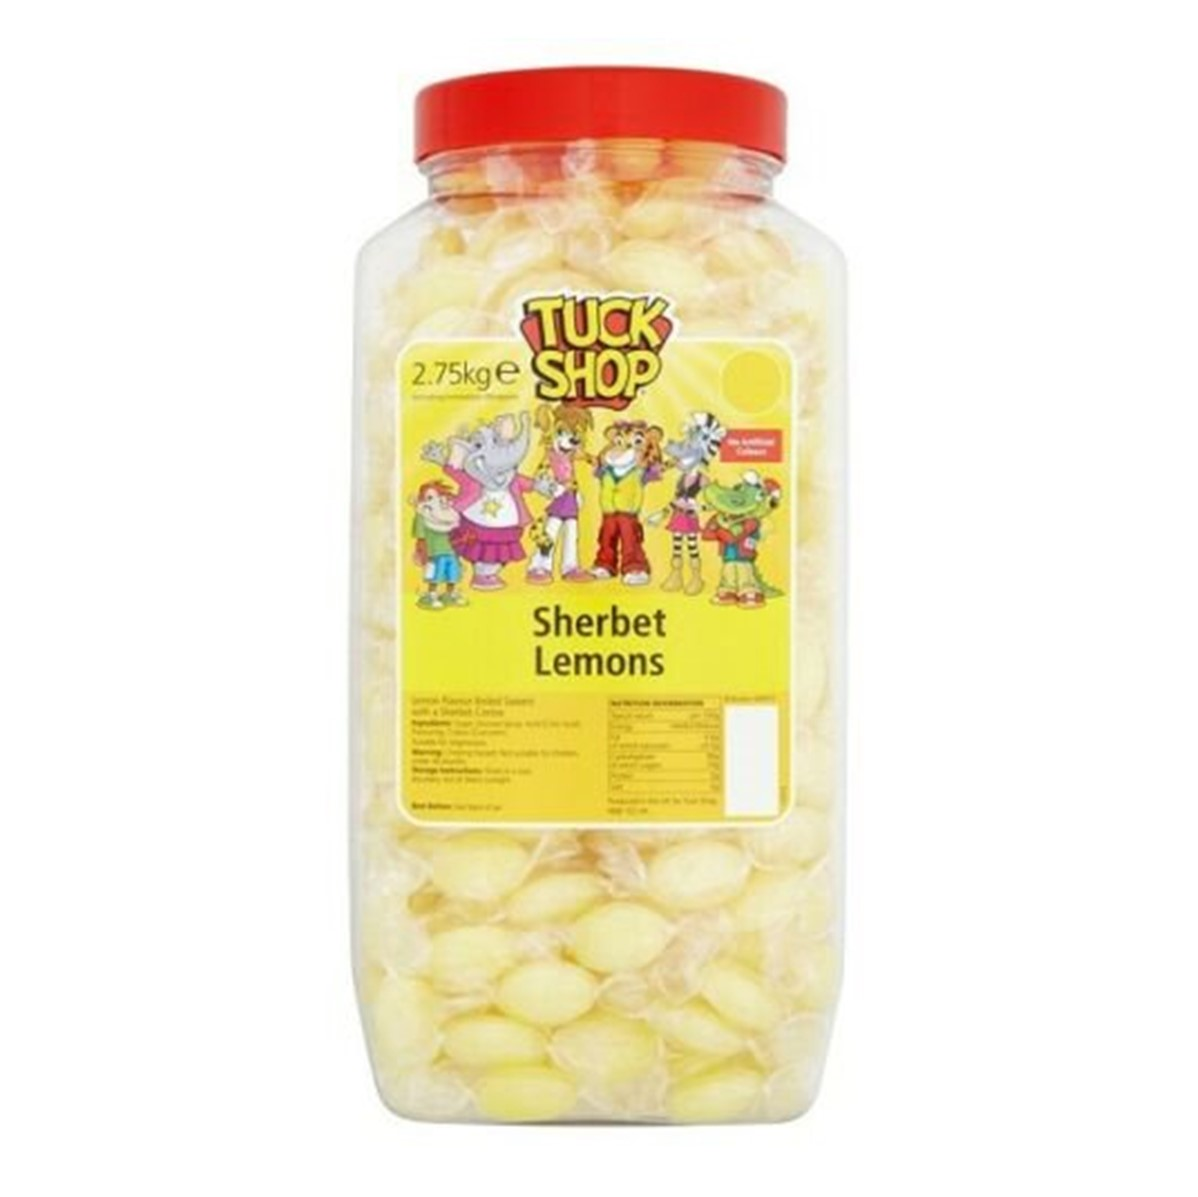 Tuck Shop Lemon Sherbets [Wrapped] - 2.75kg jar